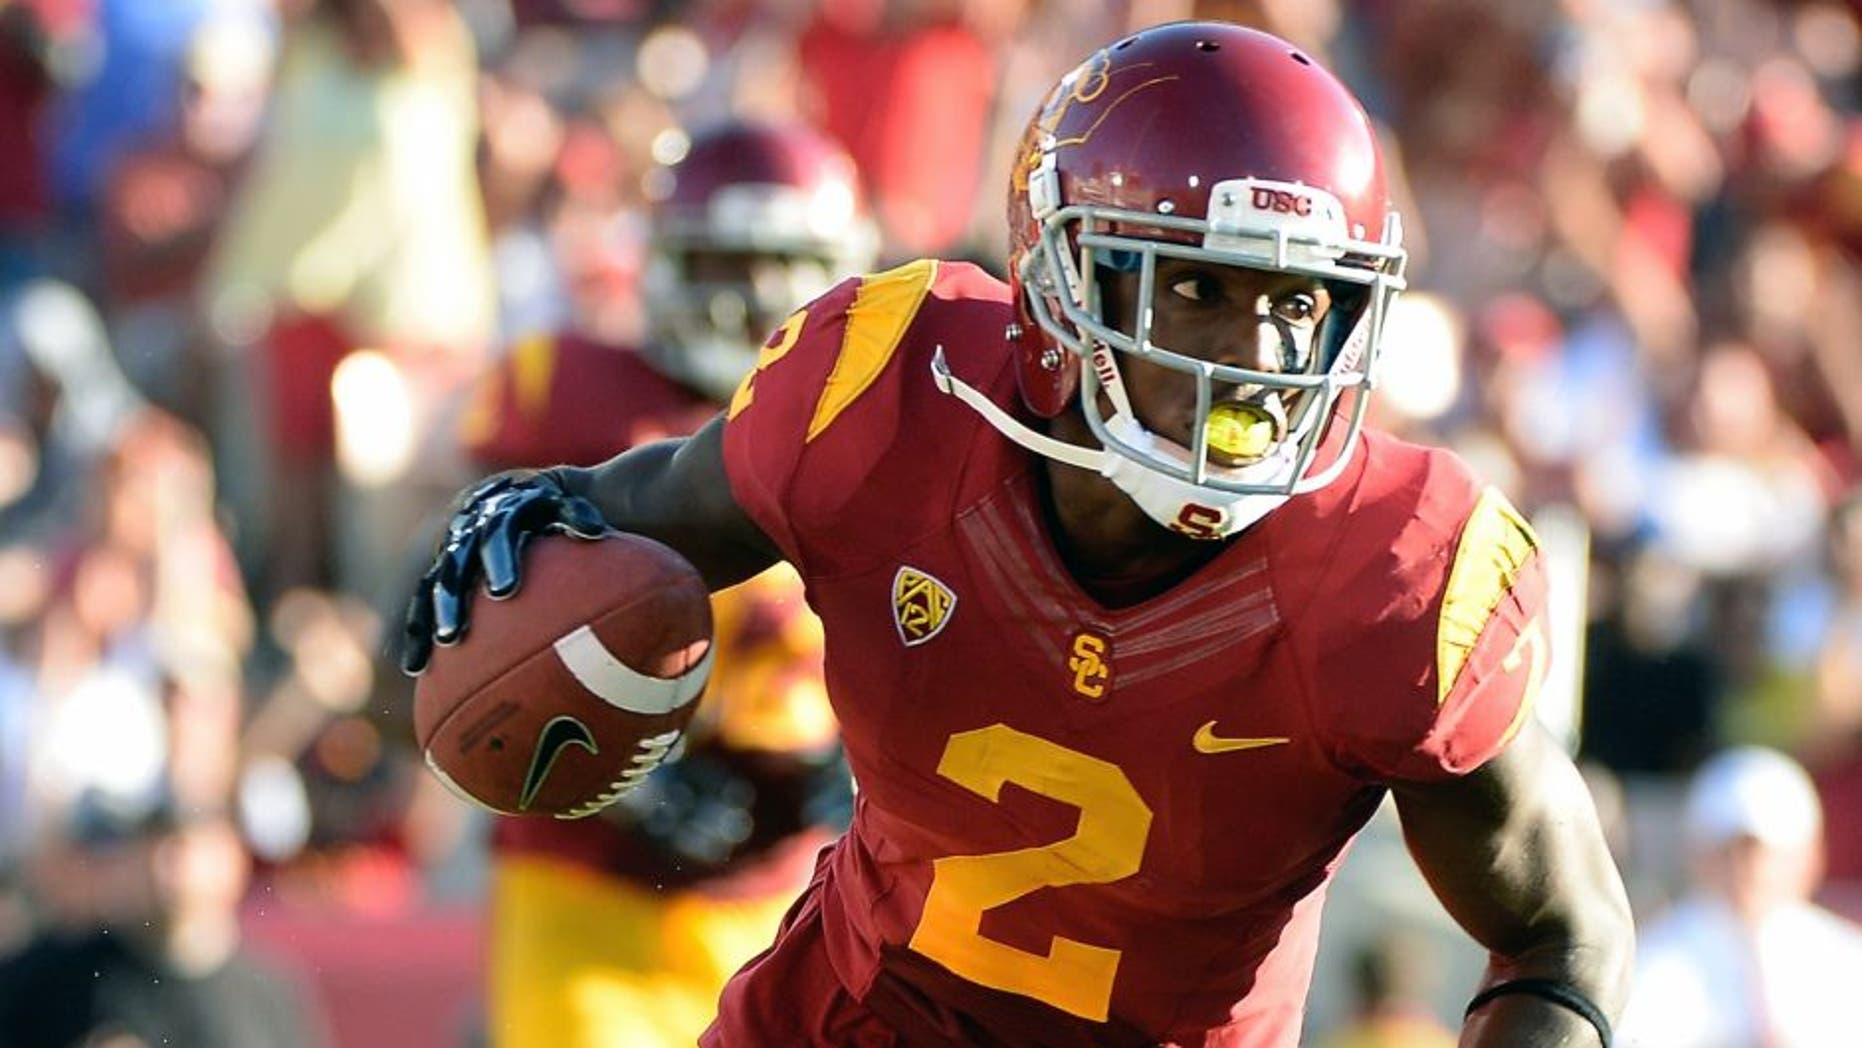 LOS ANGELES, CA - AUGUST 30: Adoree' Jackson #2 of the USC Trojans reacts after his touchodwn to take a 31-7 lead over the Fresno State Bulldogs during the second quarter at Los Angeles Memorial Coliseum on August 30, 2014 in Los Angeles, California. (Photo by Harry How/Getty Images) *** Local Caption *** Adoree' Jackson